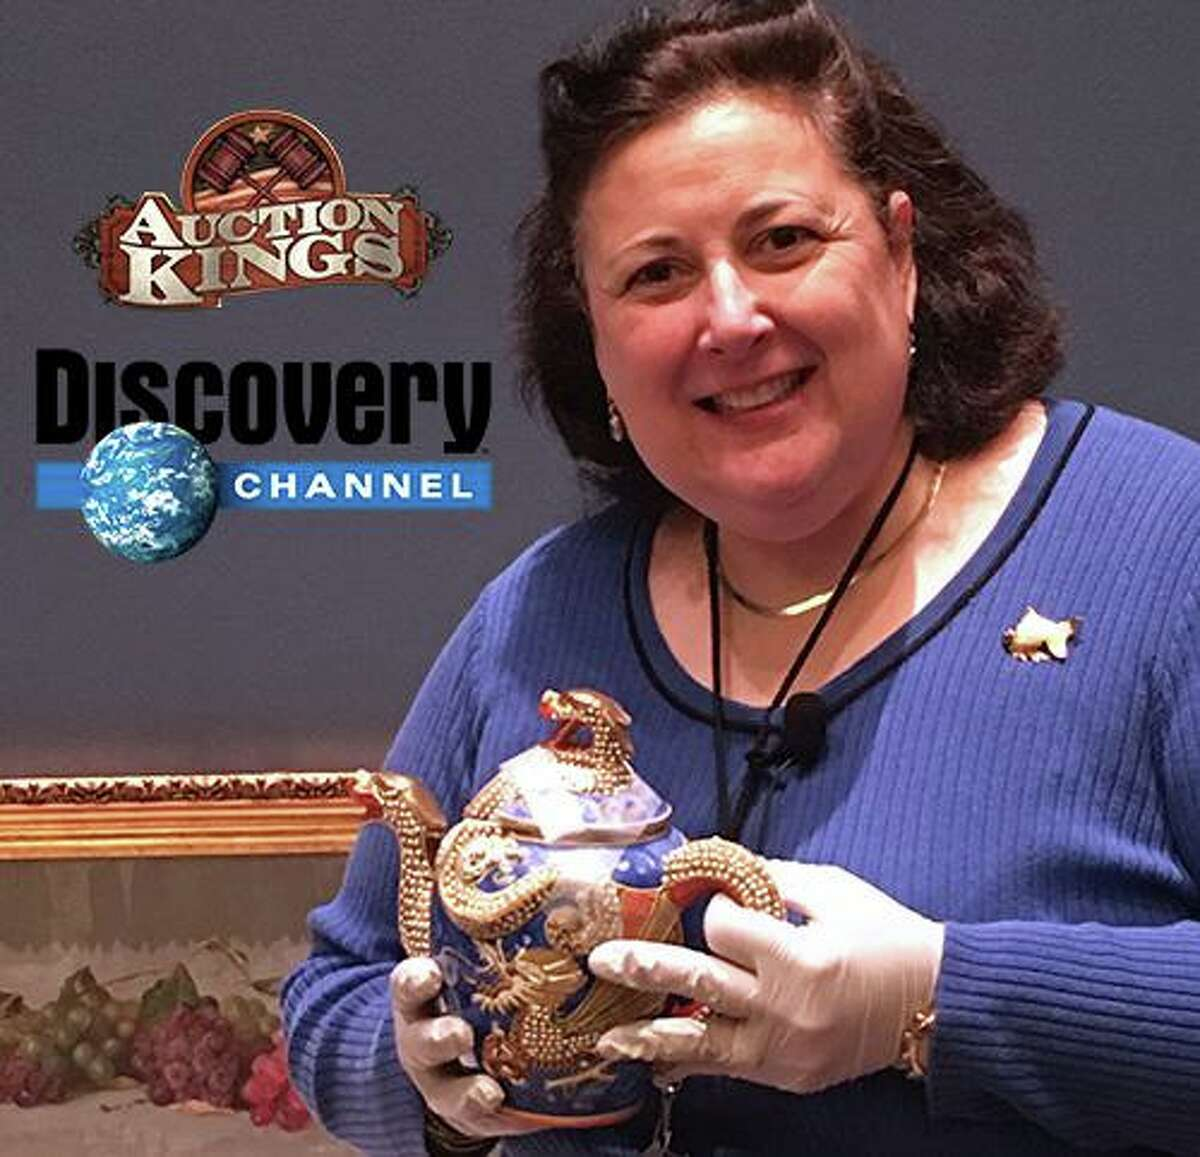 Star appraiser Dr. Lori is one of the featured programs during the virtual Fall Home and Outdoor Living Show Sept. 11-13. Her live Zoom show sessions will be offered Saturday, Sept. 12, at noon and 2 p.m., and Sunday, Sept. 13, at 1 p.m.